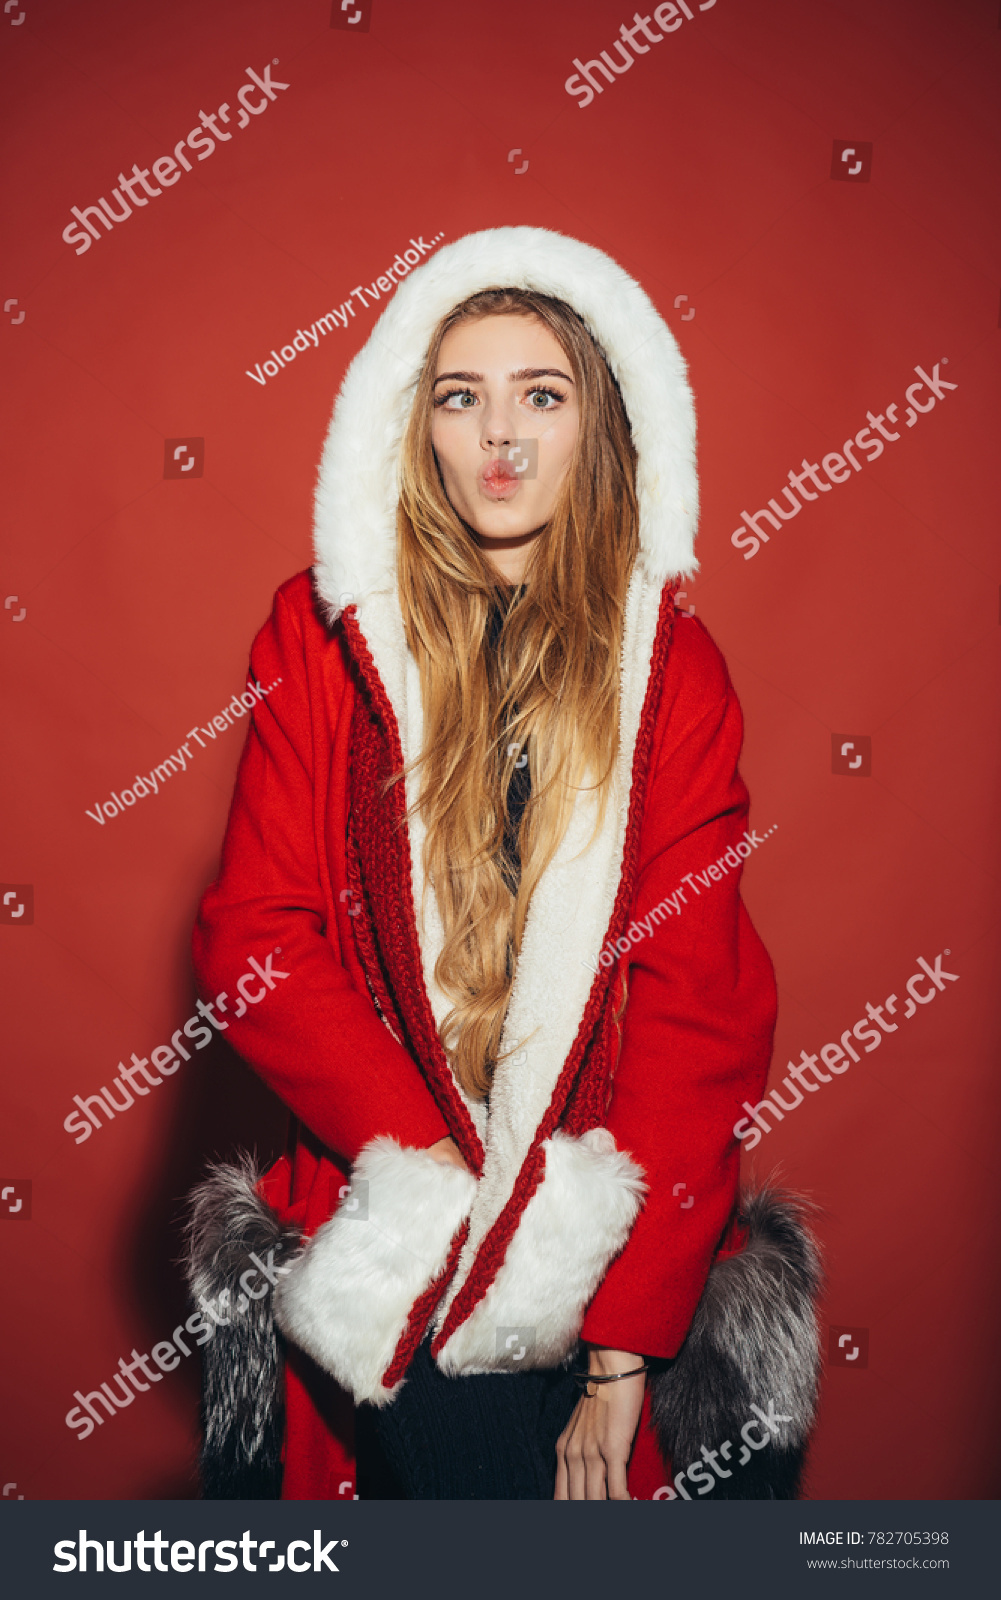 705deb15c3 New year and christmas. Happy girl celebrate new year on red ...